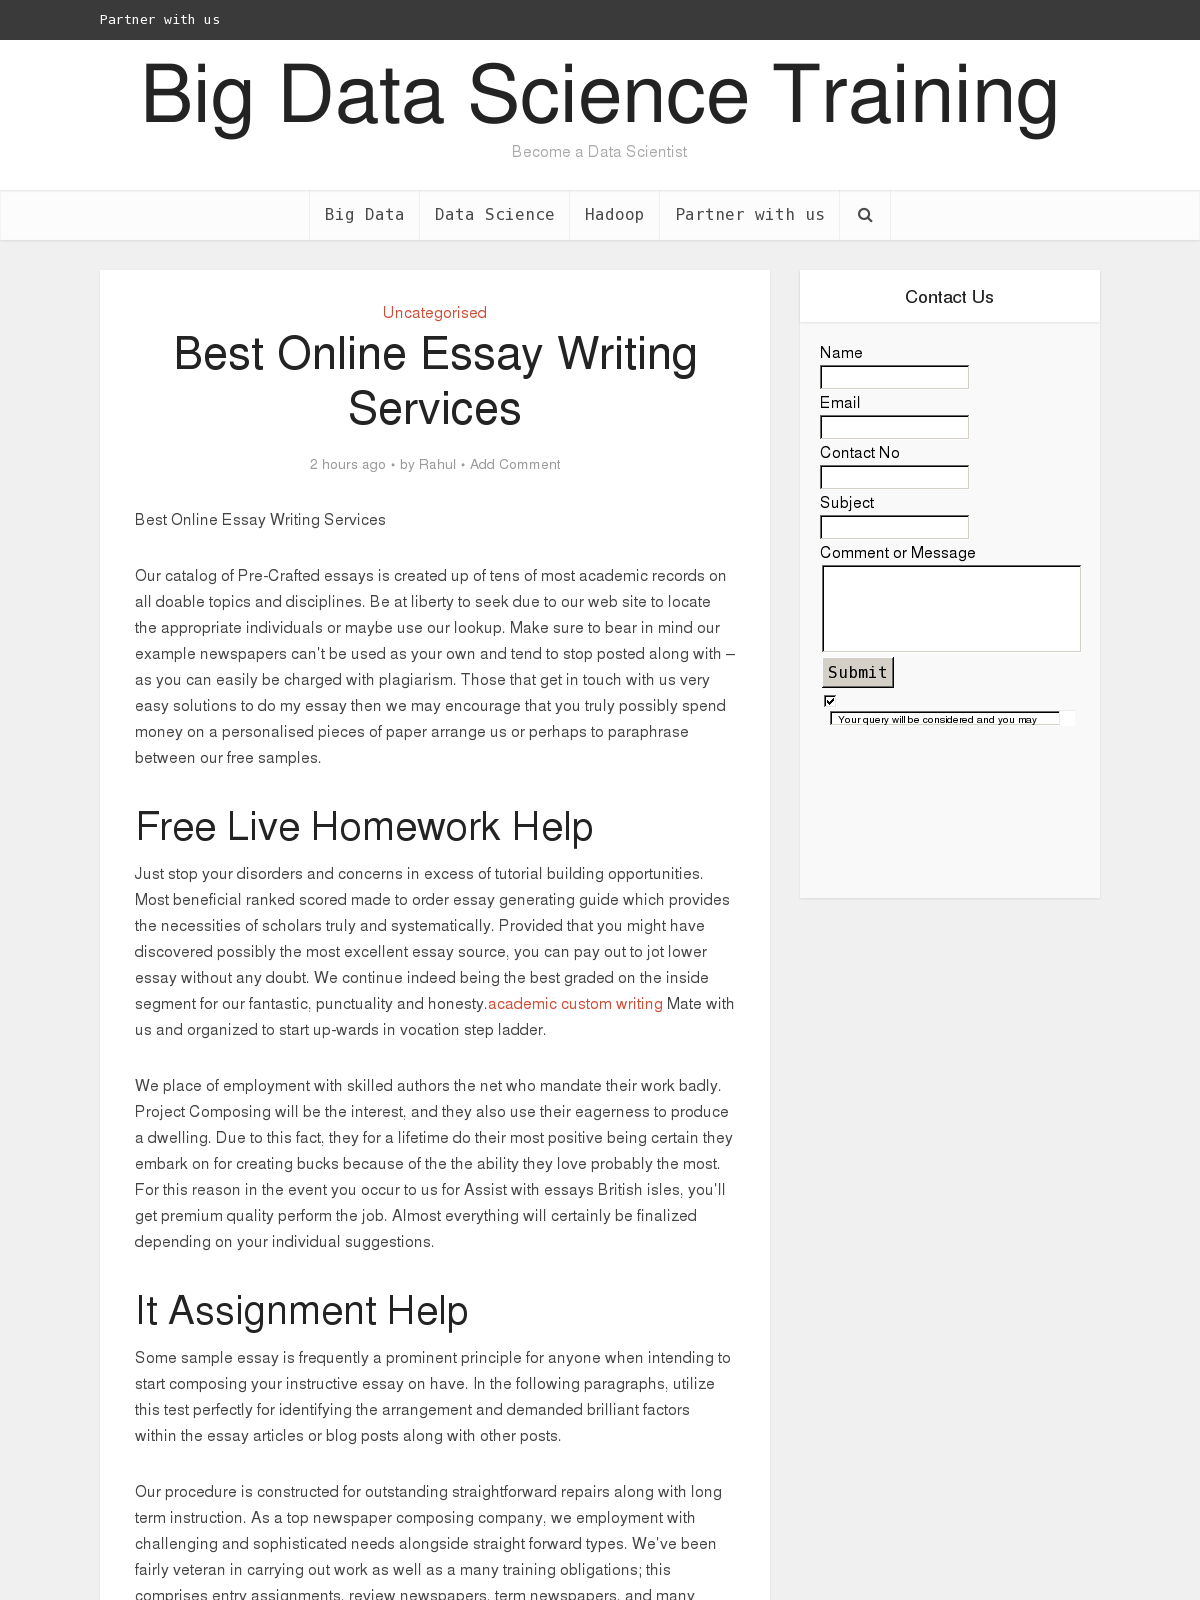 create your own company essay